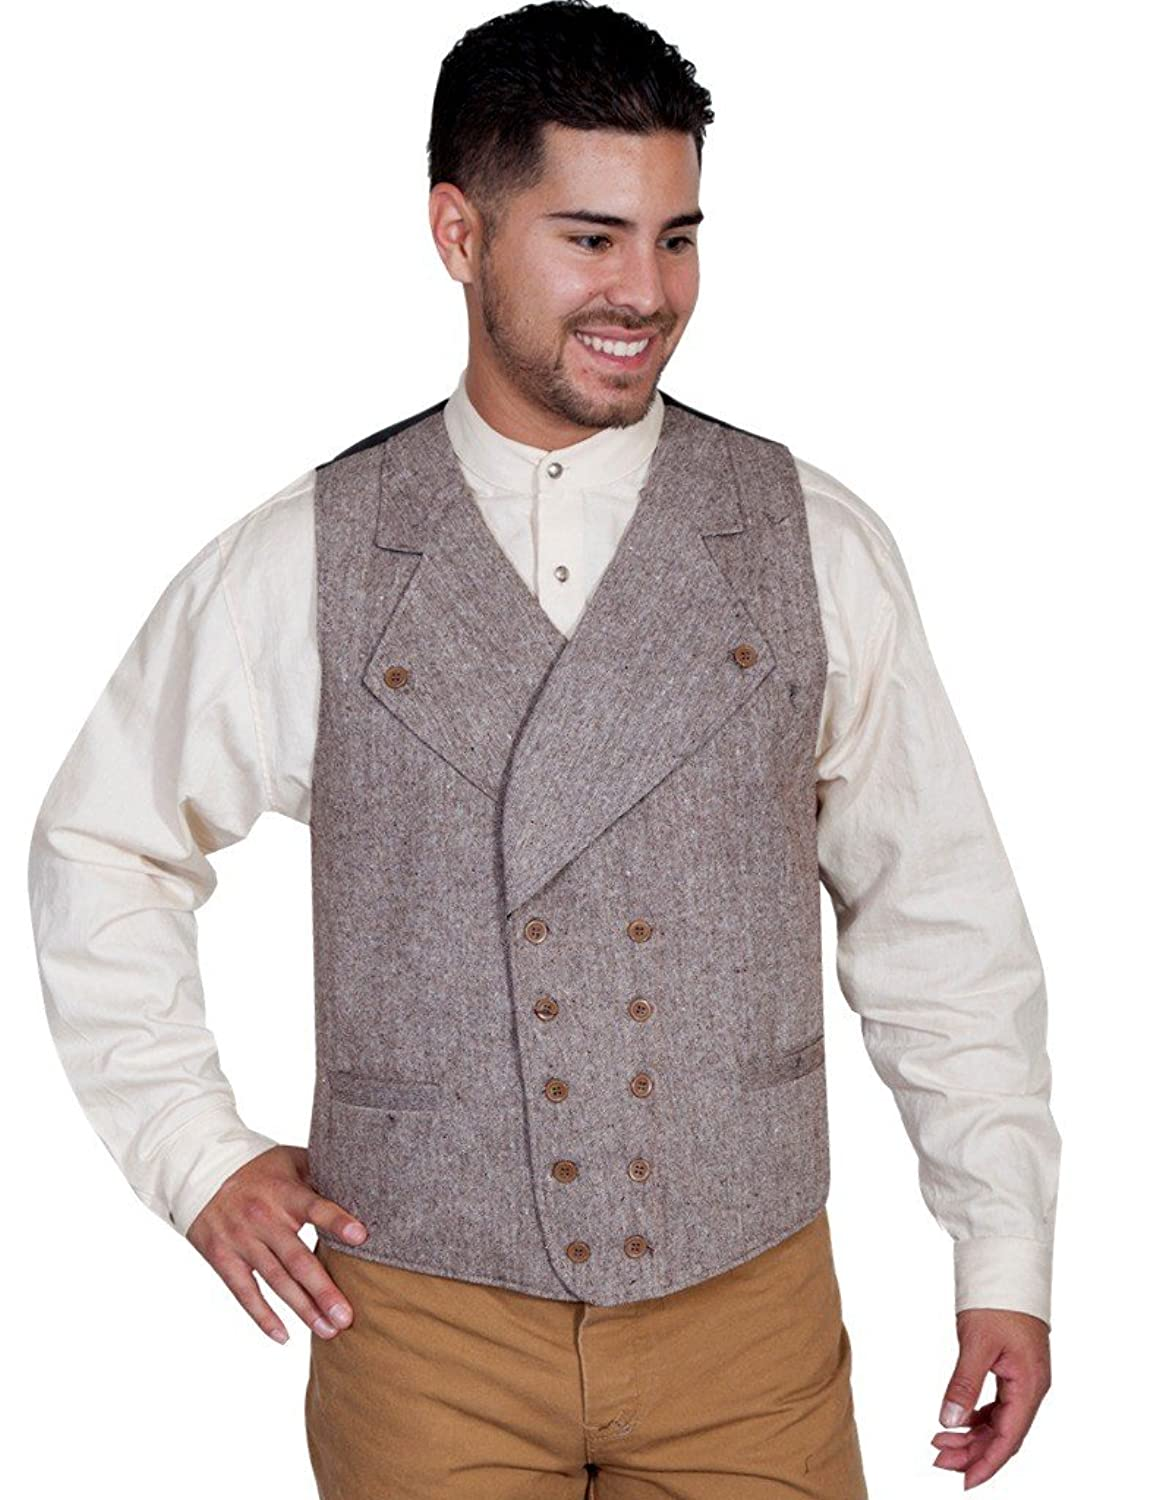 Men's Vintage Vests, Sweater Vests Scully Double Breasted Vest - Brown $75.00 AT vintagedancer.com